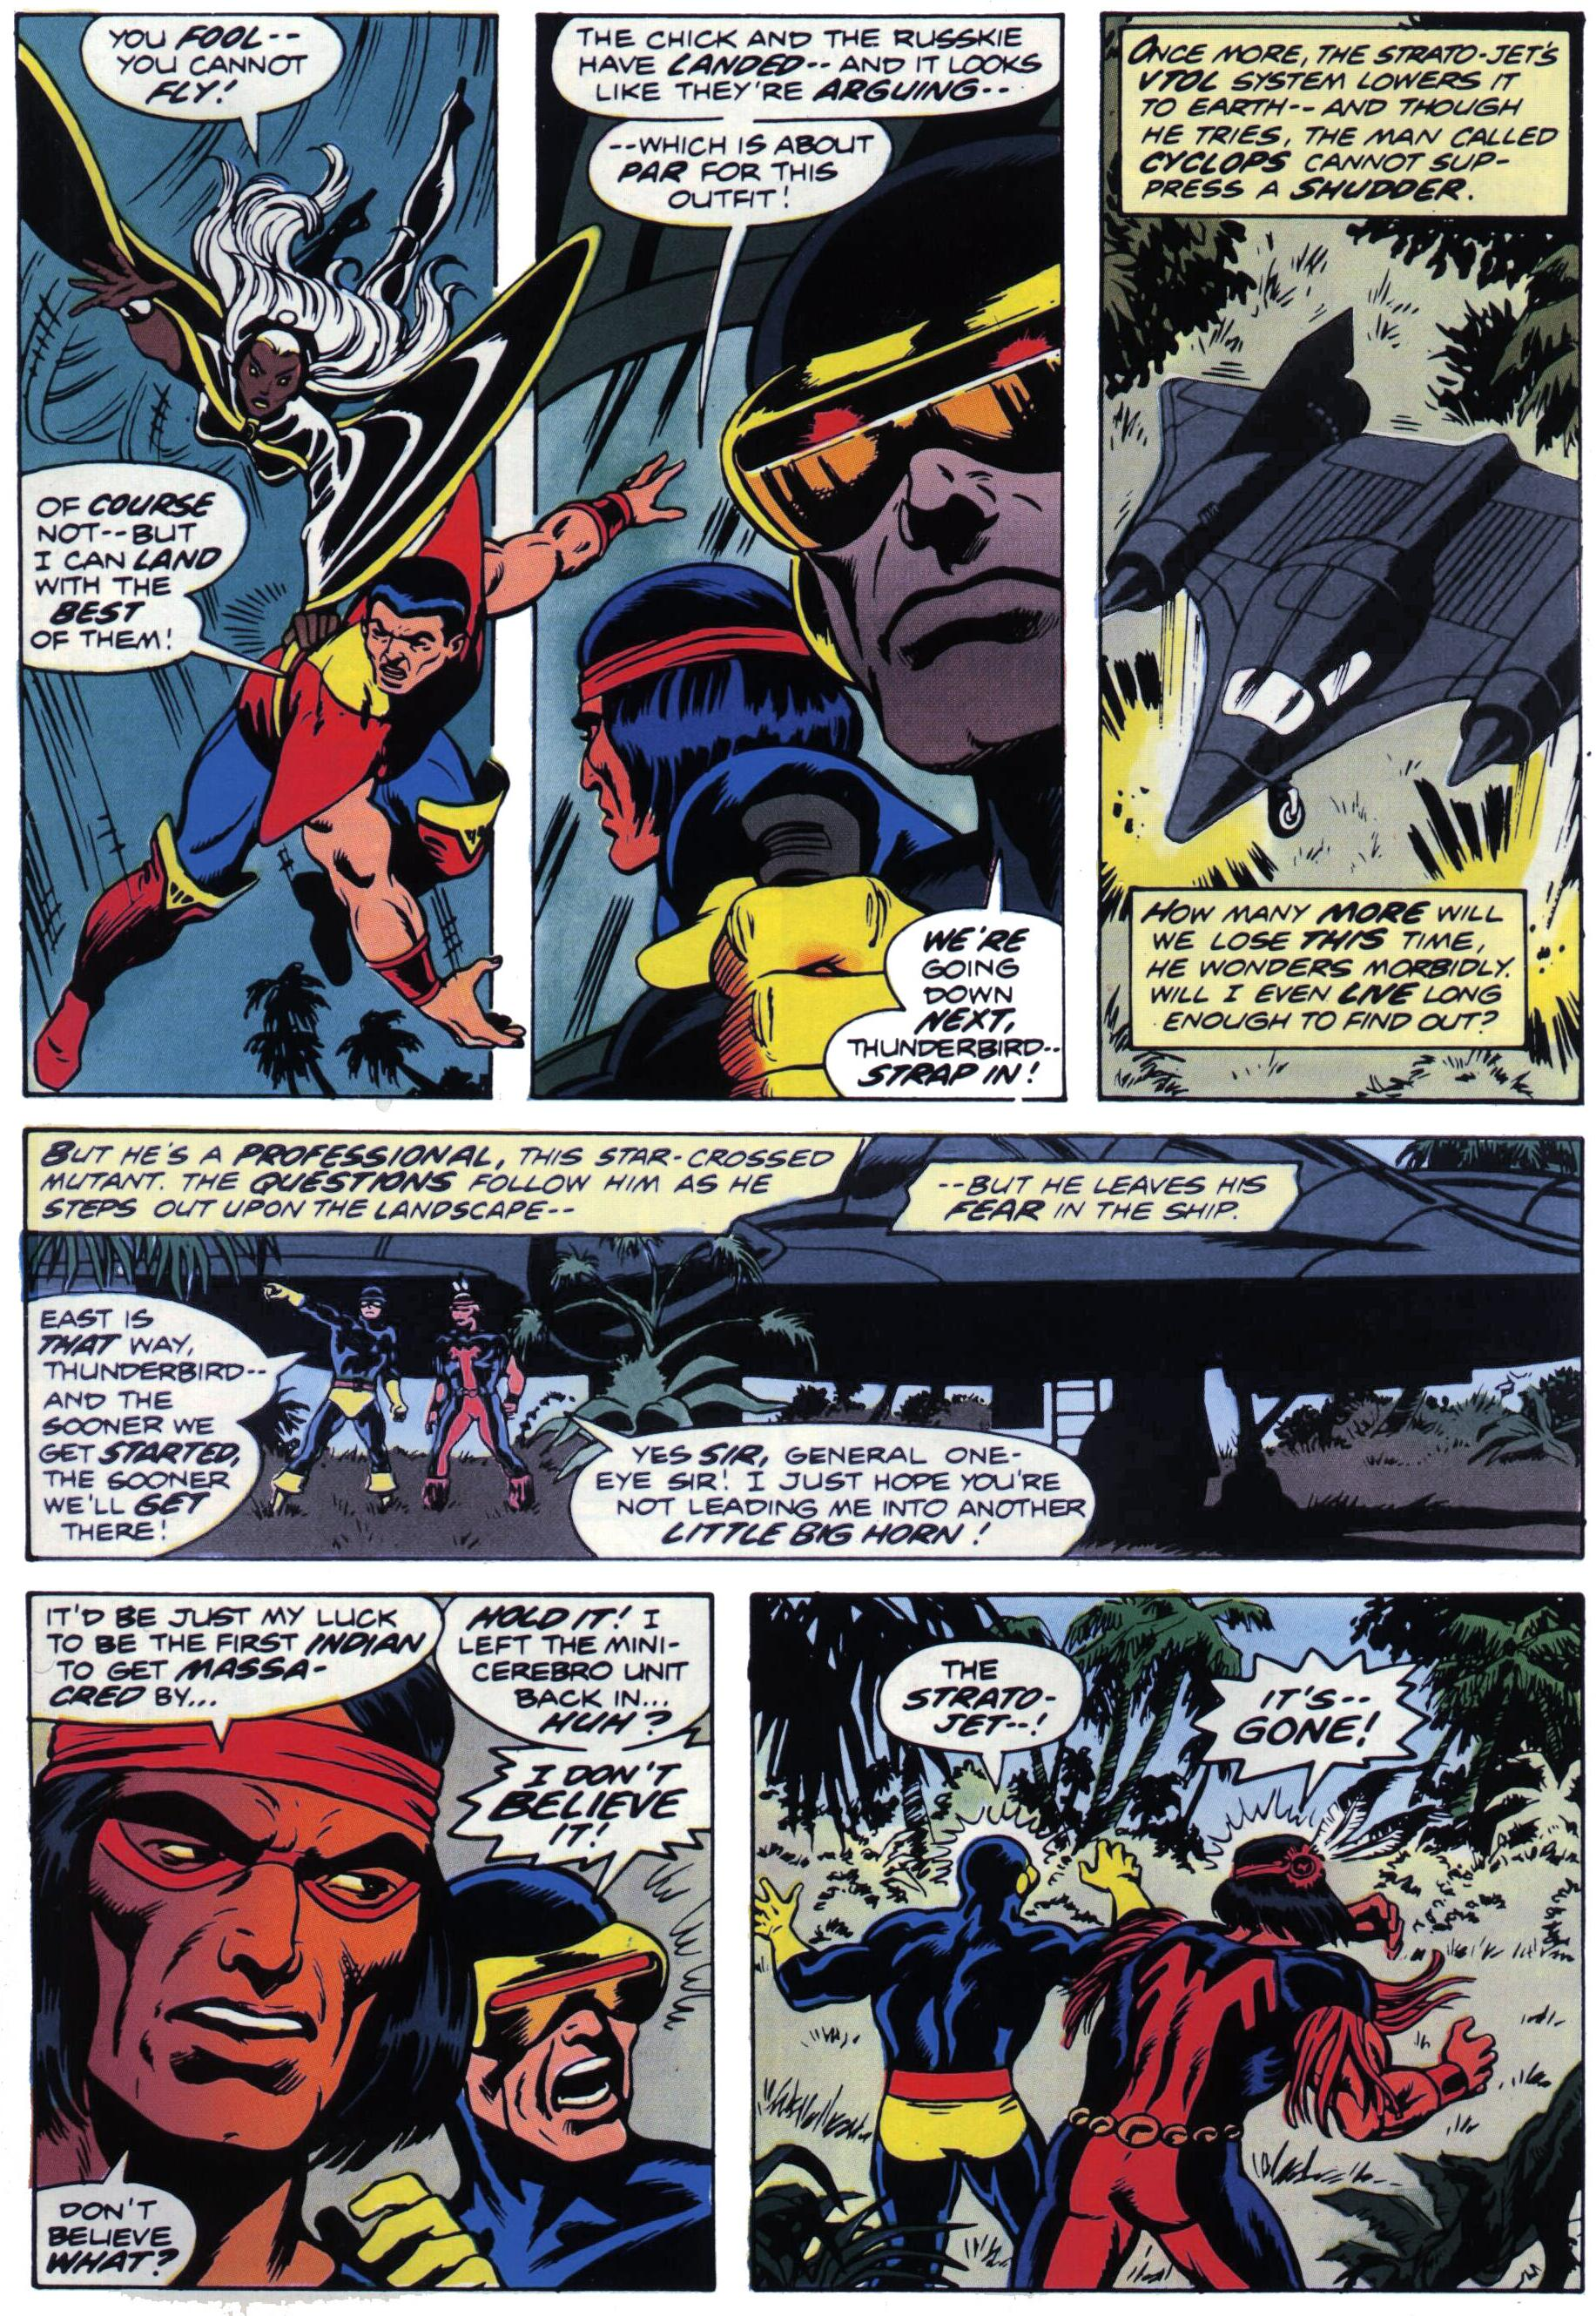 Read online Giant-Size X-Men comic -  Issue #1 - 23